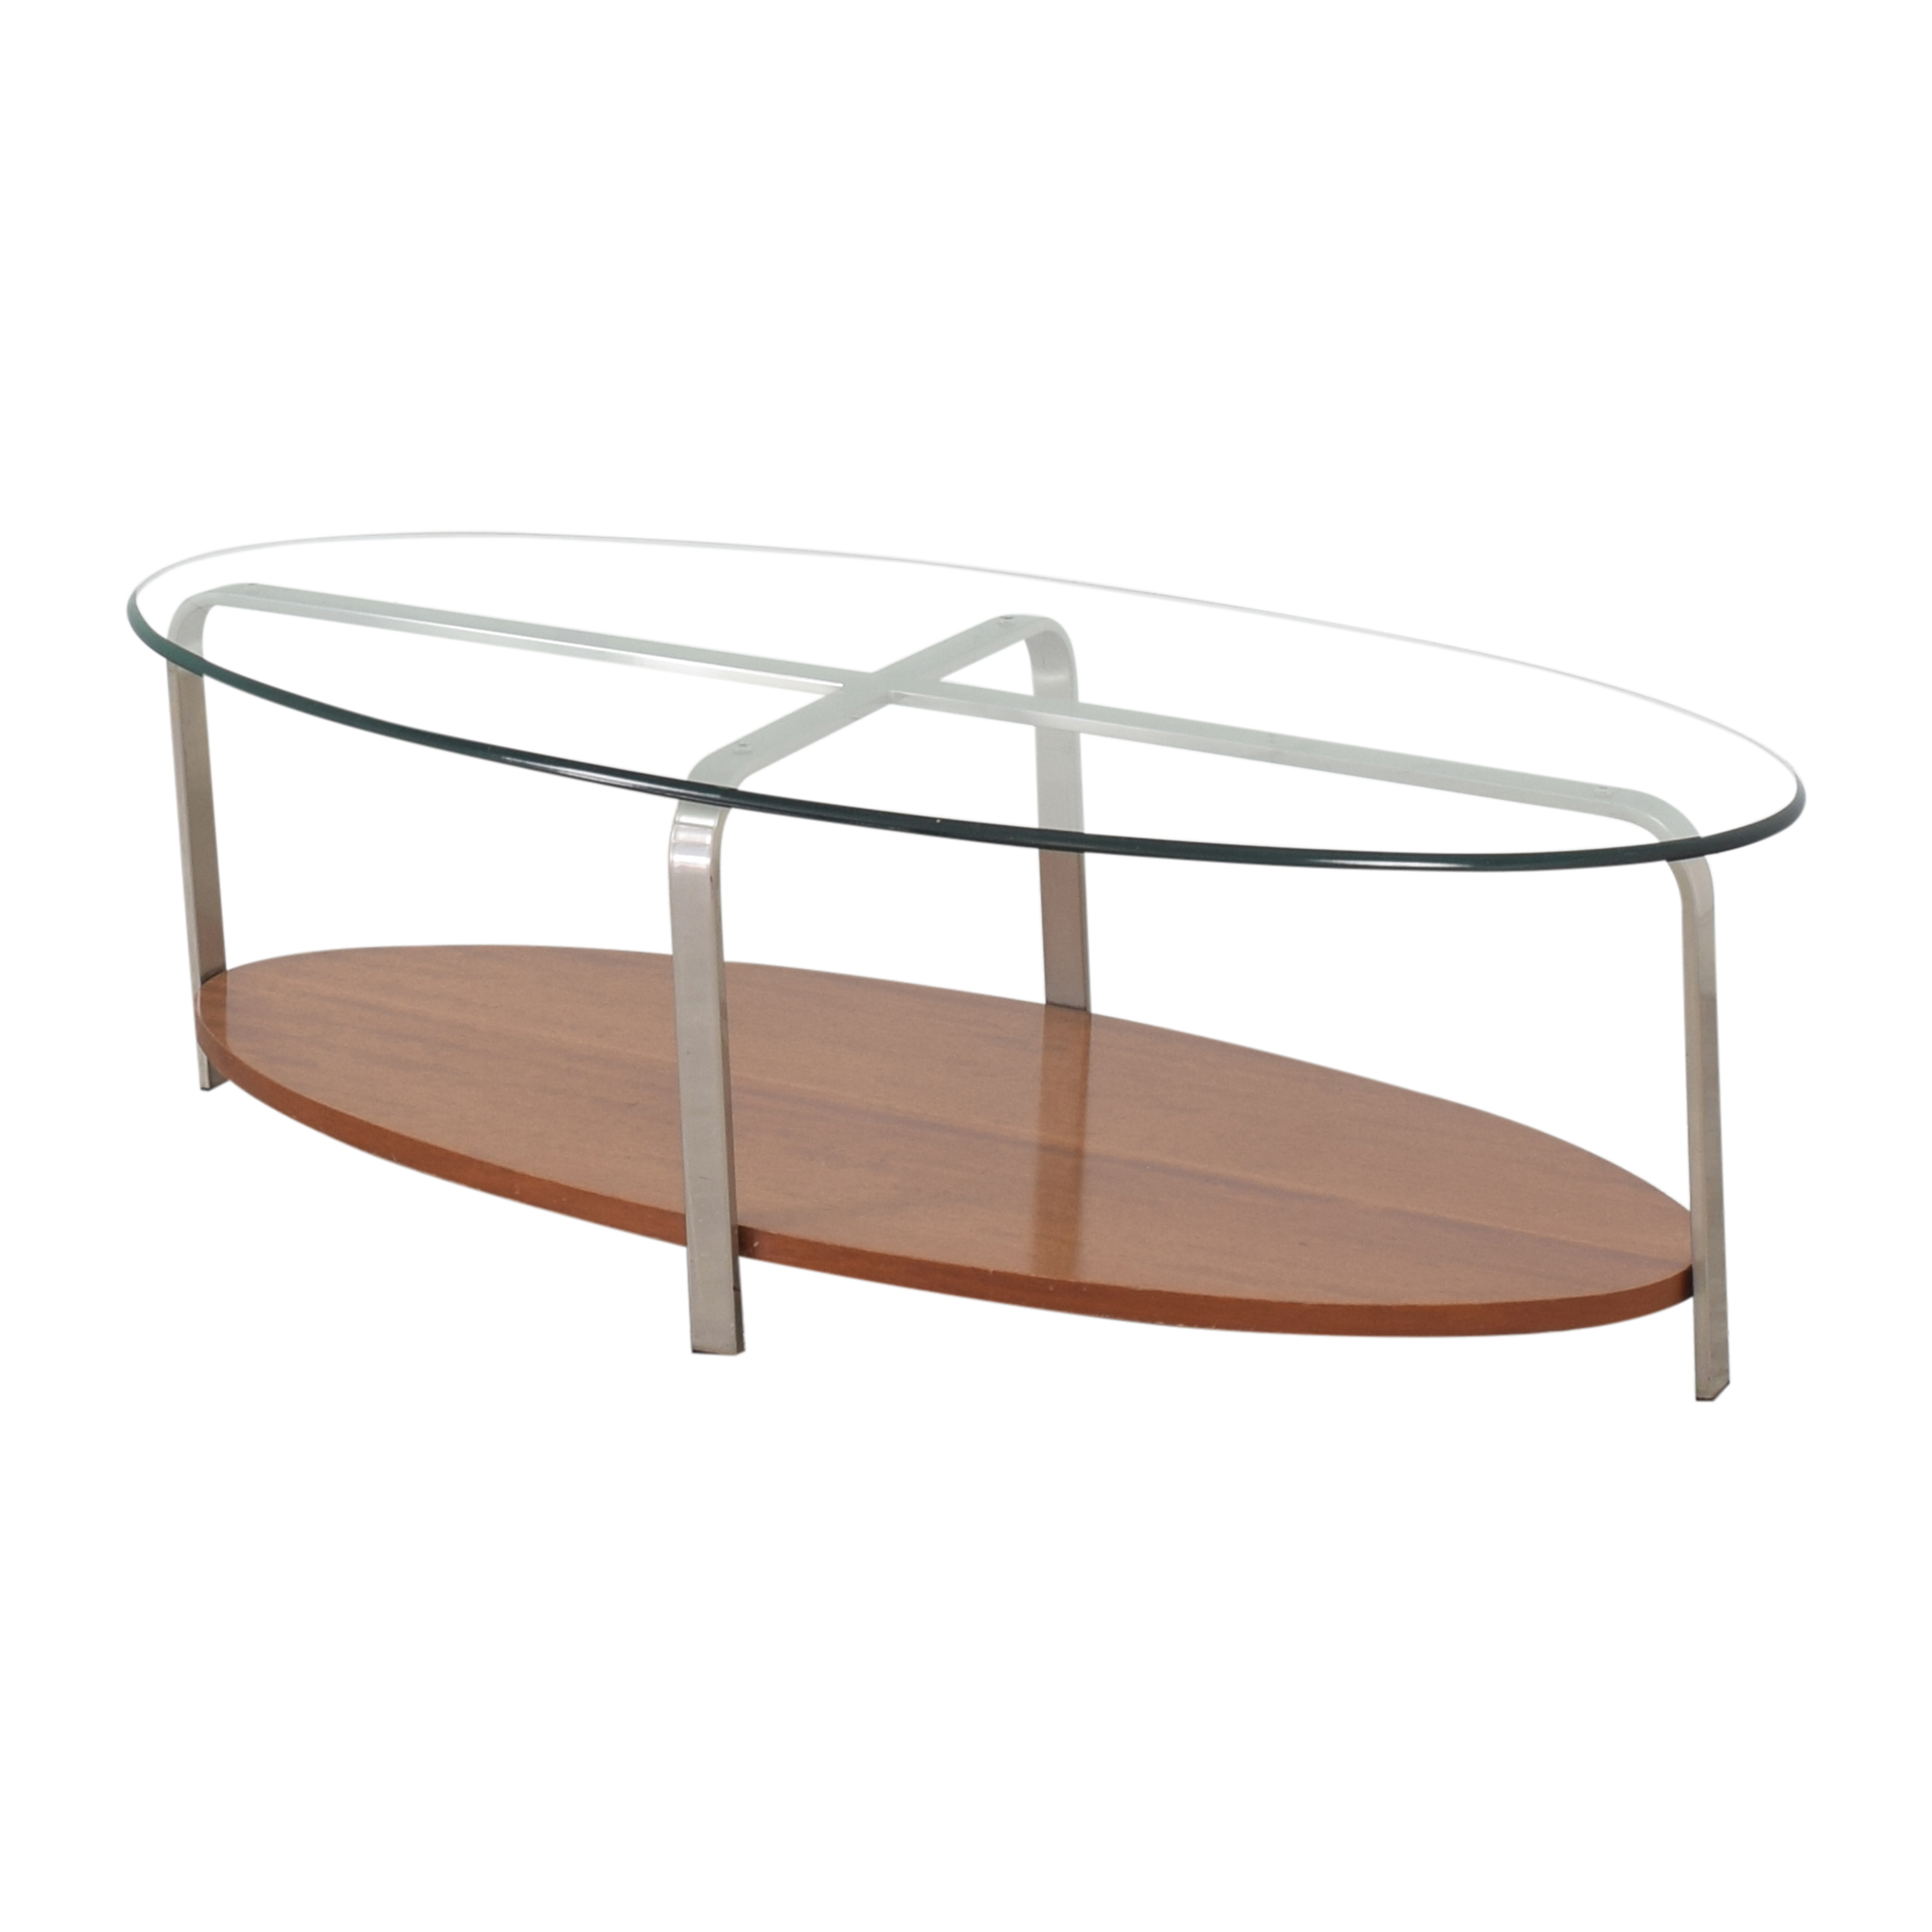 The Lane Company The Lane Company Oval Coffee Table for sale